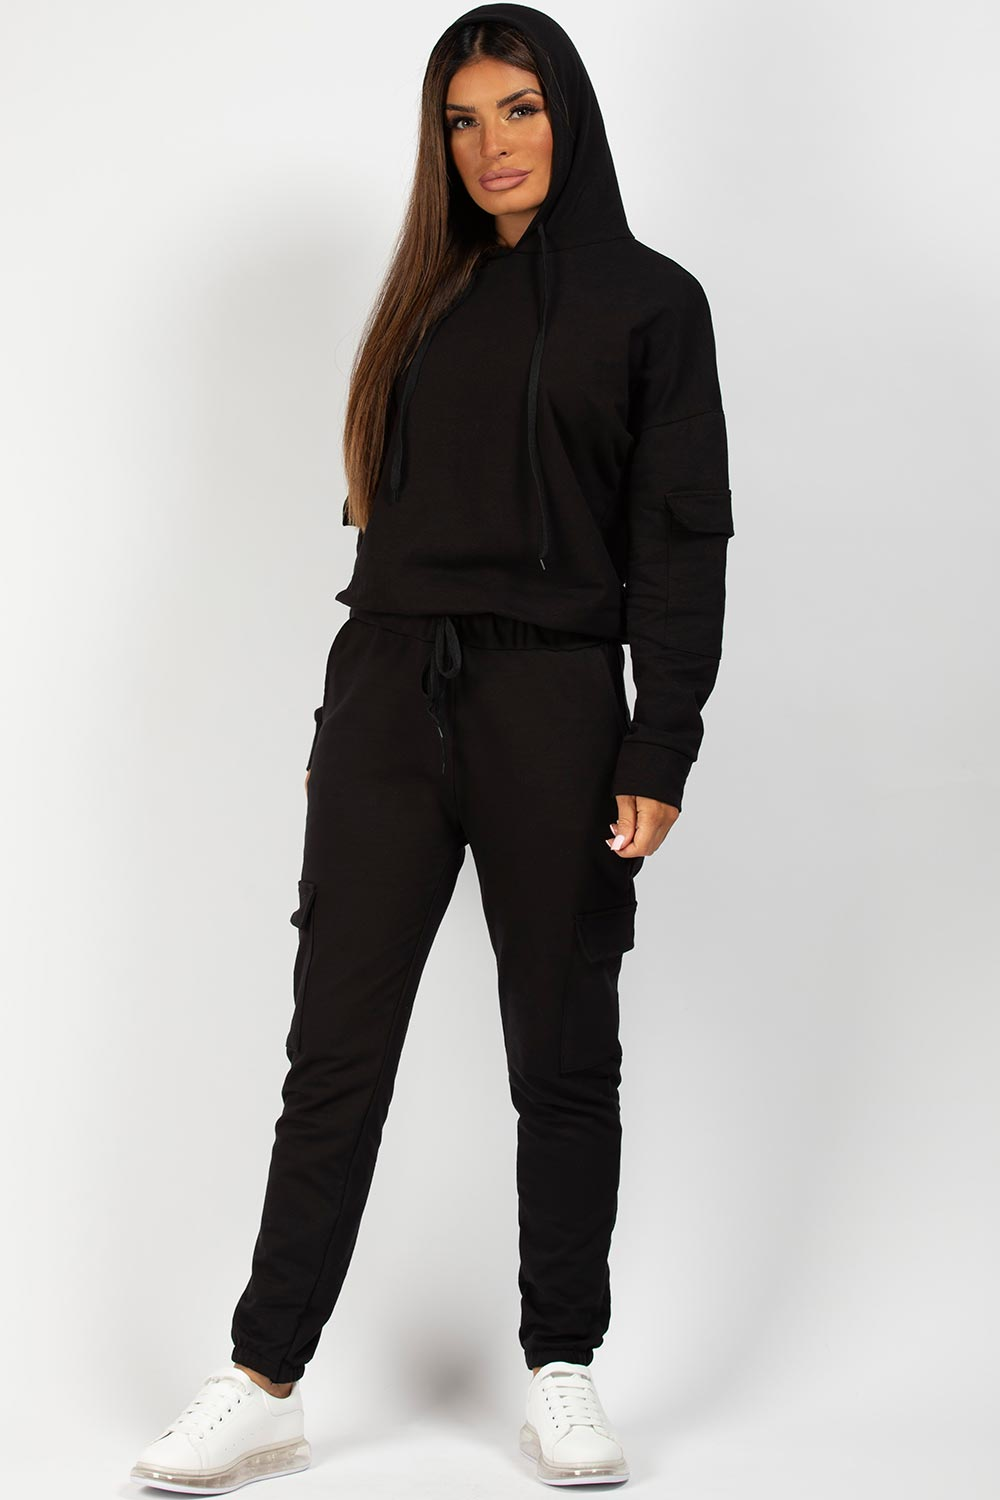 black oversized loungewear set